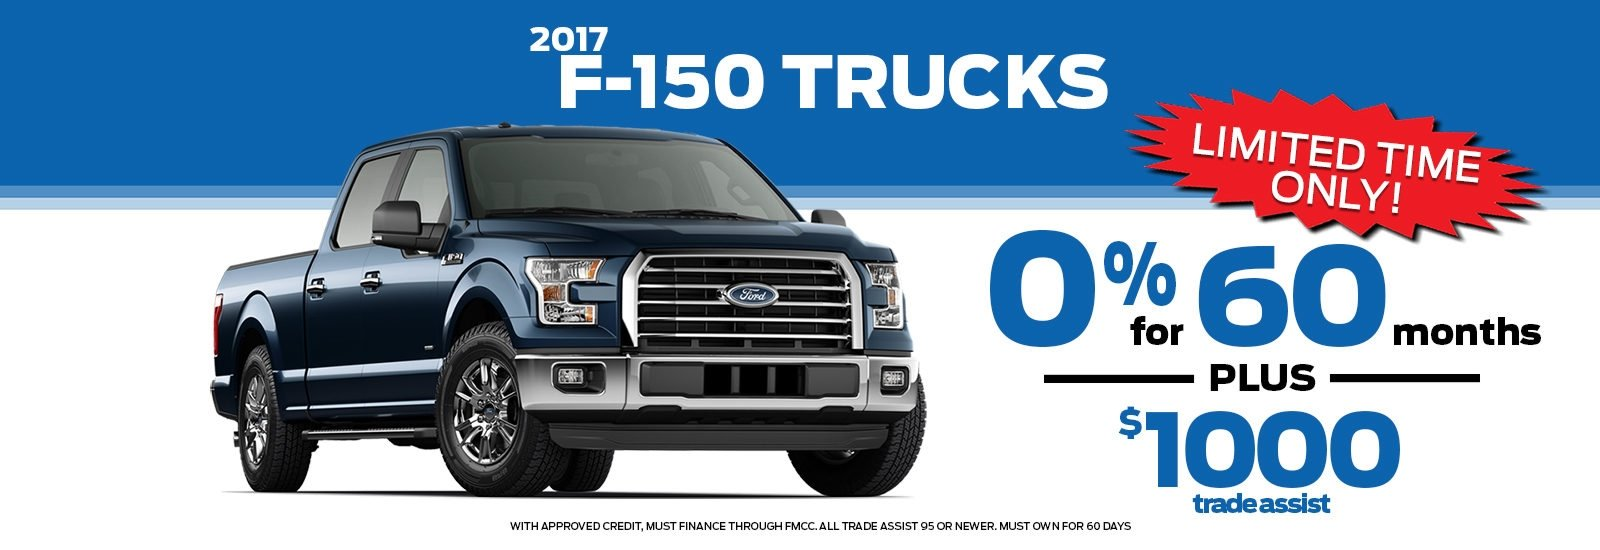 Get 0% for 60 months plus $1000 trade assist on new  2017 F-150 Trucks